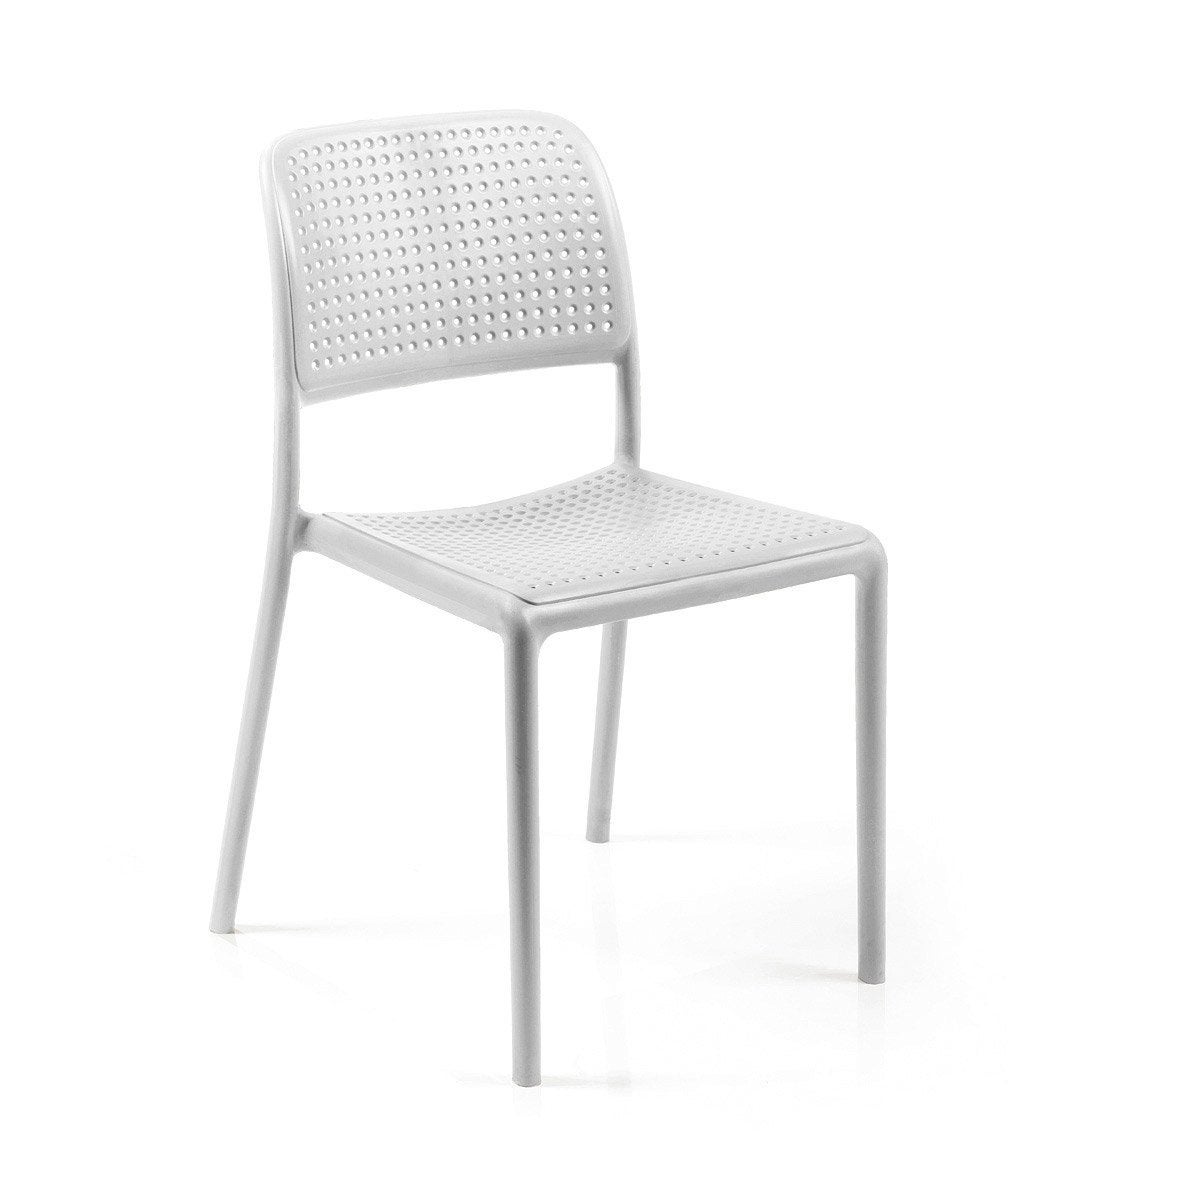 Chaise plastique transparent leroy merlin - Chaise de jardin en plastique blanc ...